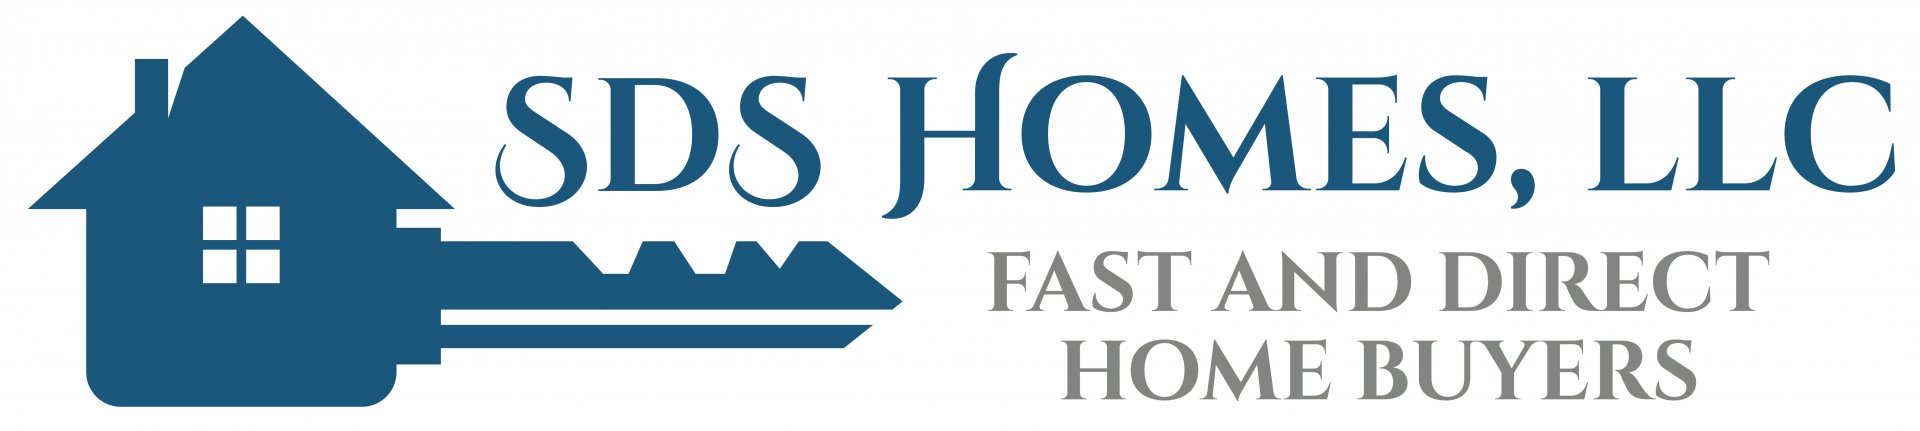 SDS HOMES, LLC  logo